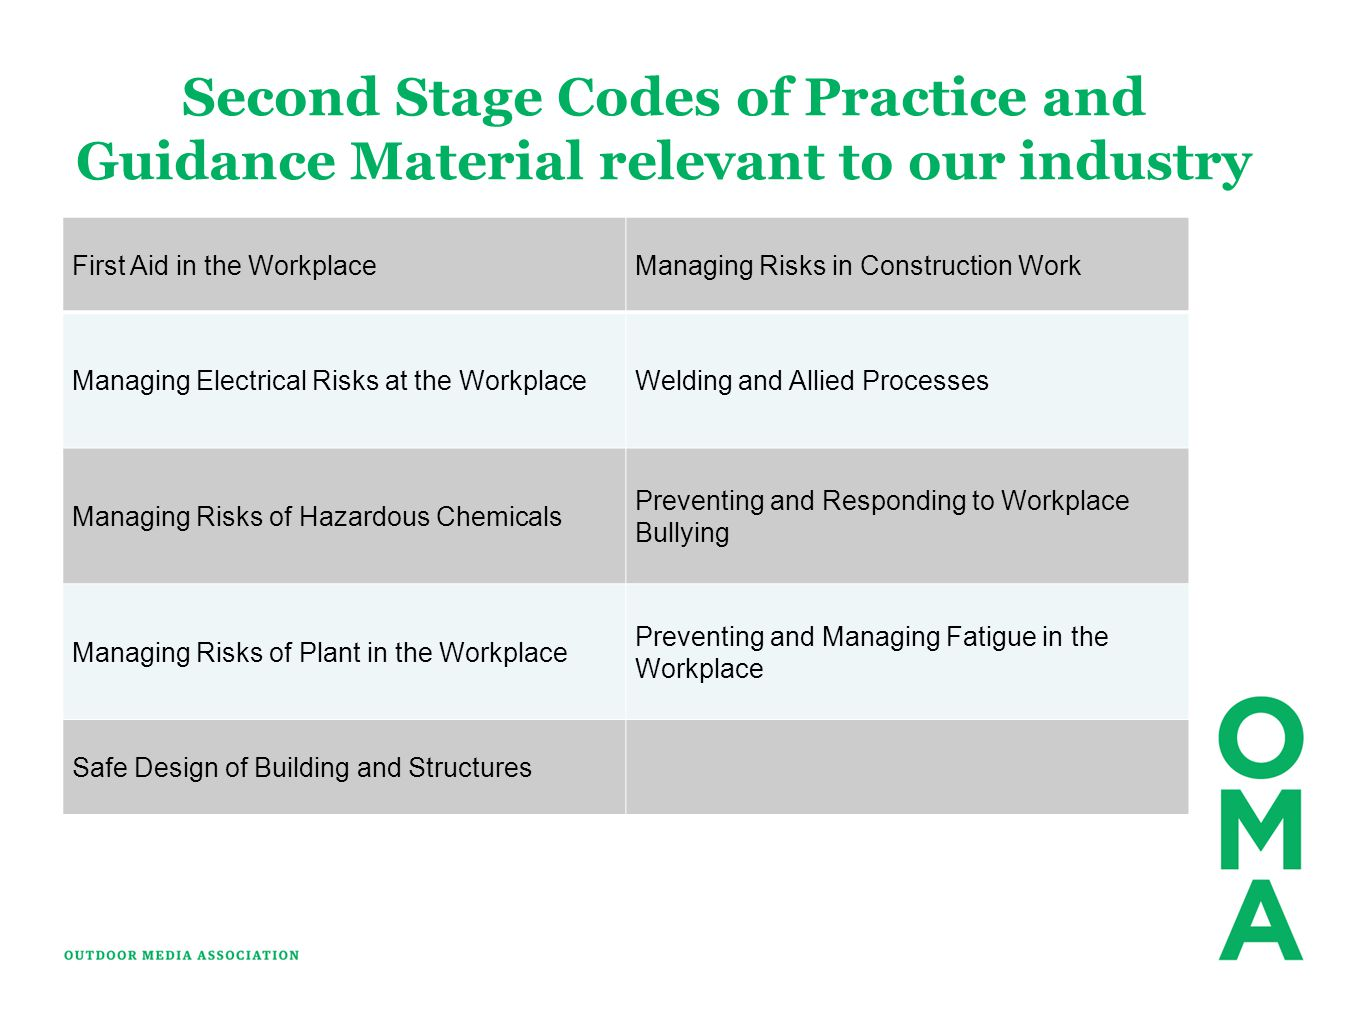 Second Stage Codes of Practice and Guidance Material relevant to our industry